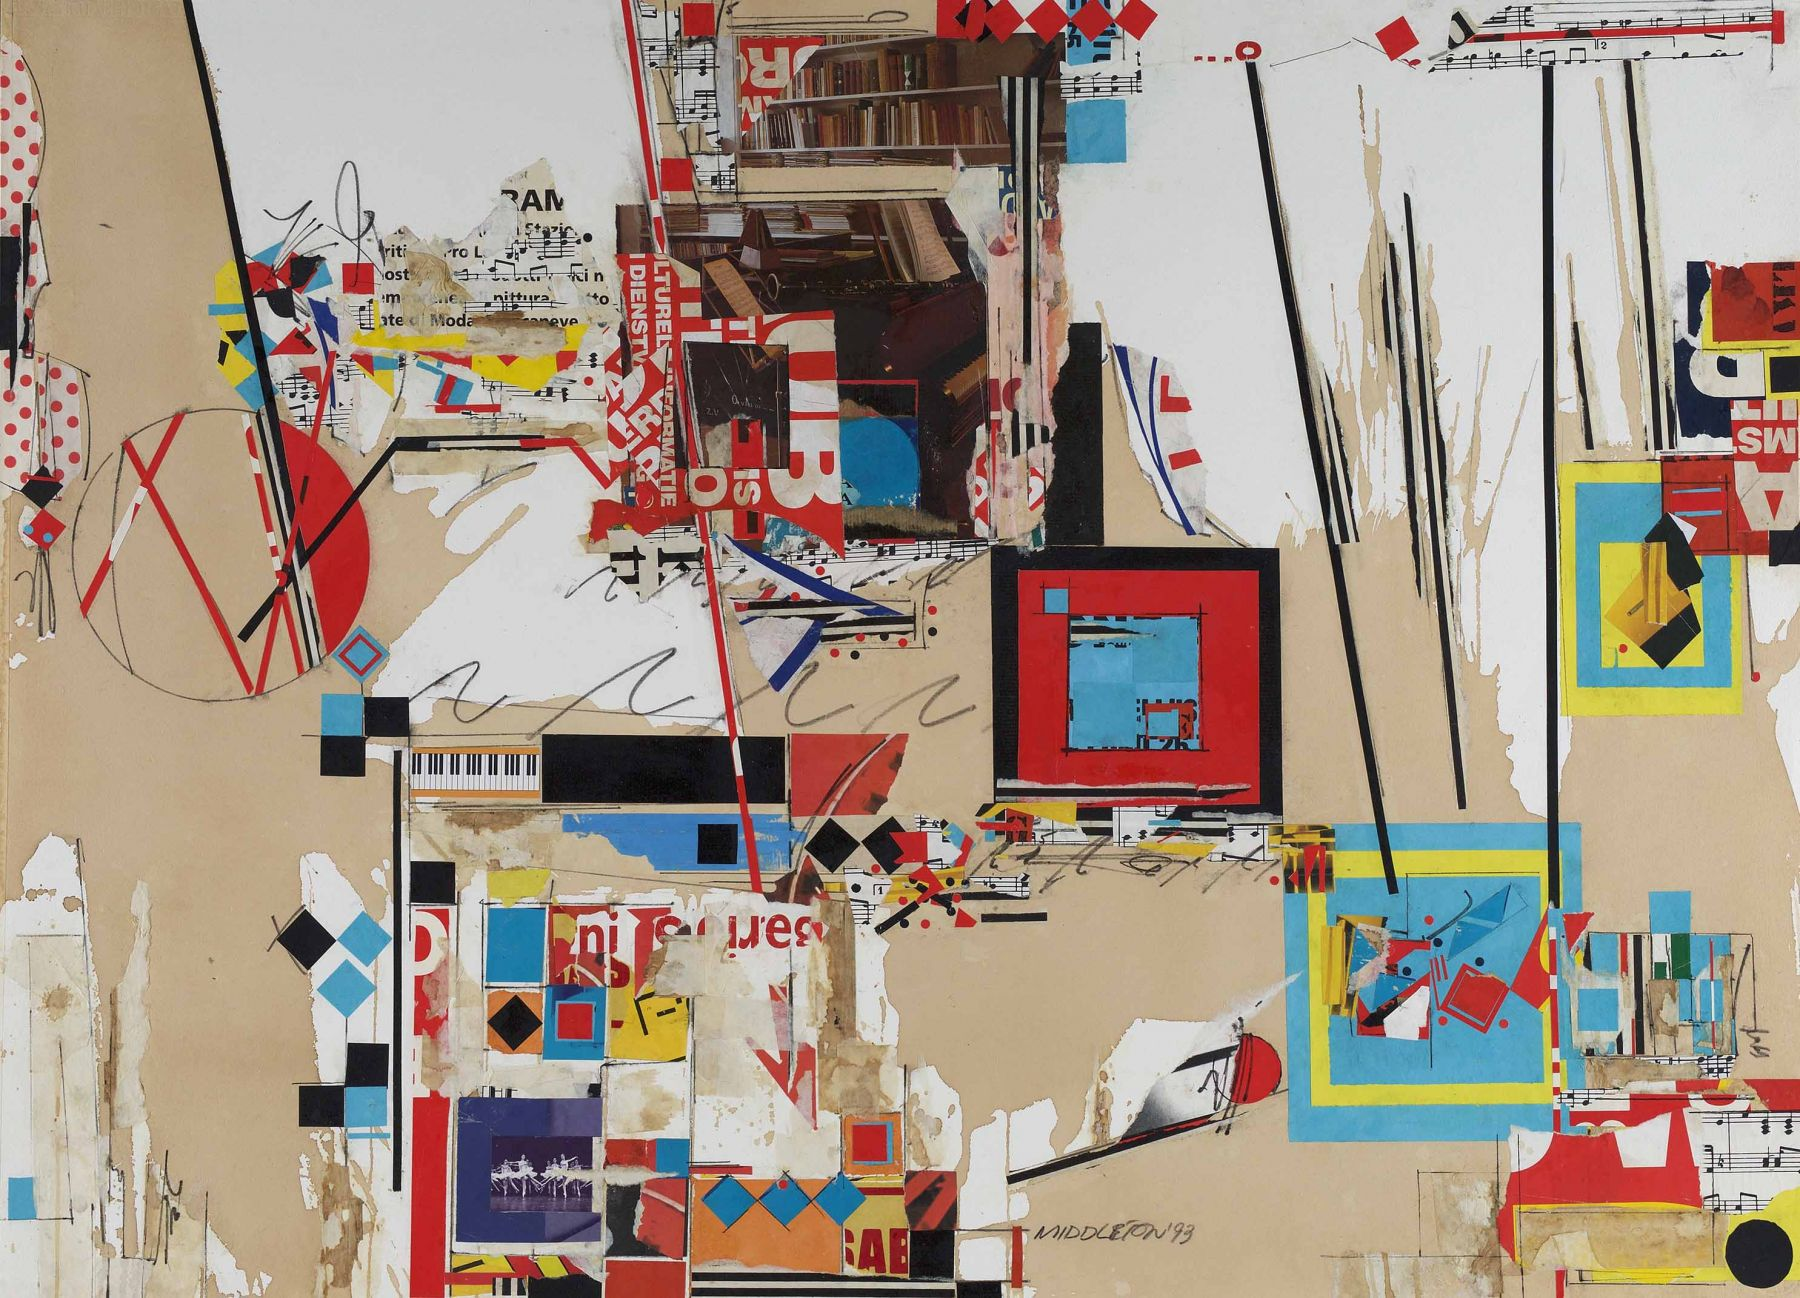 Time,1993, Mixed media and collage on paper